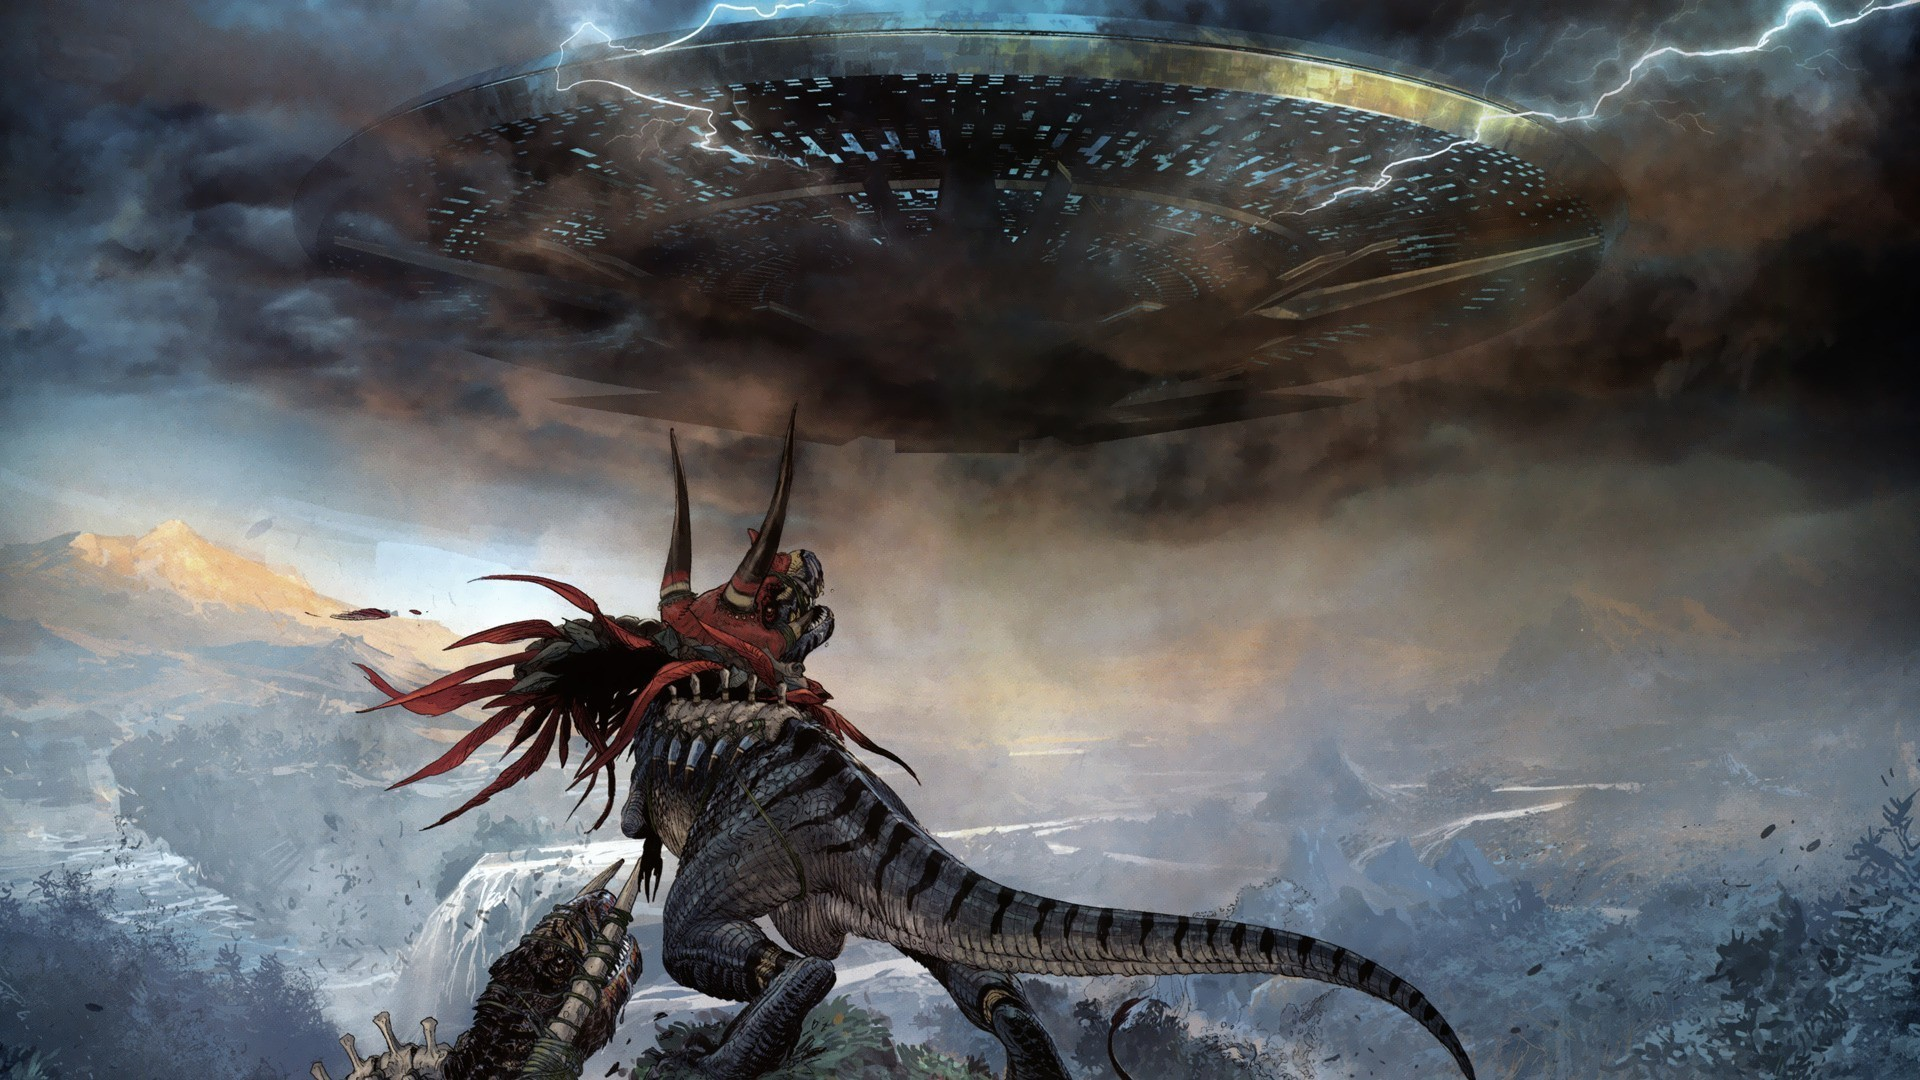 Epic Monster Wallpapers Fantasy Science Fiction Concept Art